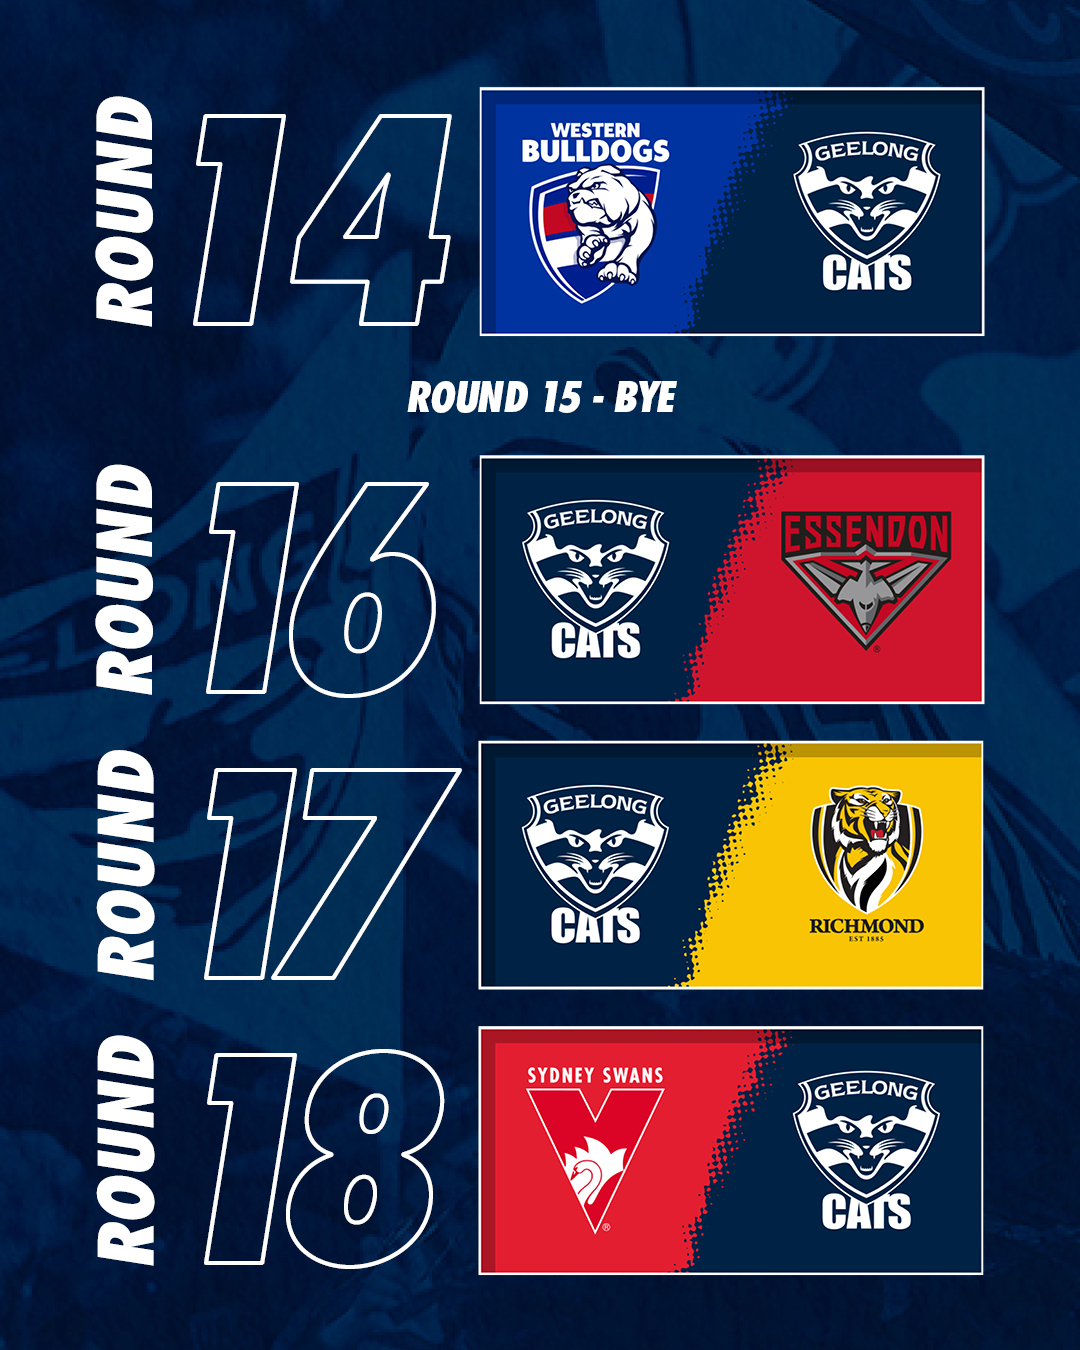 Geelong Cats On Twitter The Final Pieces Of Our 2020 Puzzle Are In Place Fixture Presented By Gmhba Read Https T Co Jq9e6mmzh8